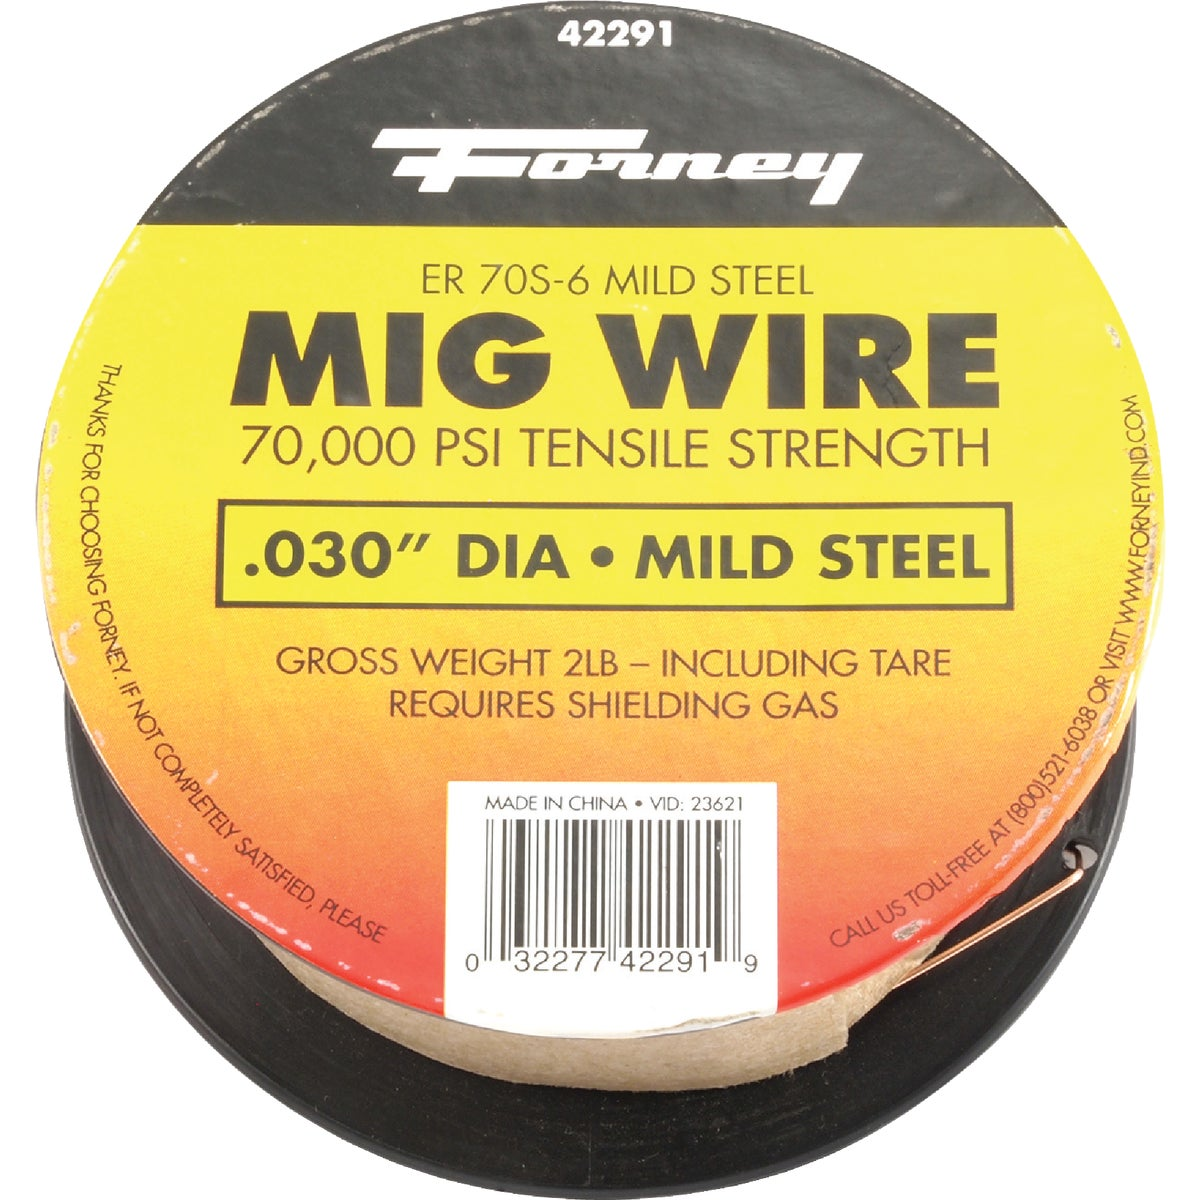 2LB .030 MIG WIRE - 42291 by Forney Industries